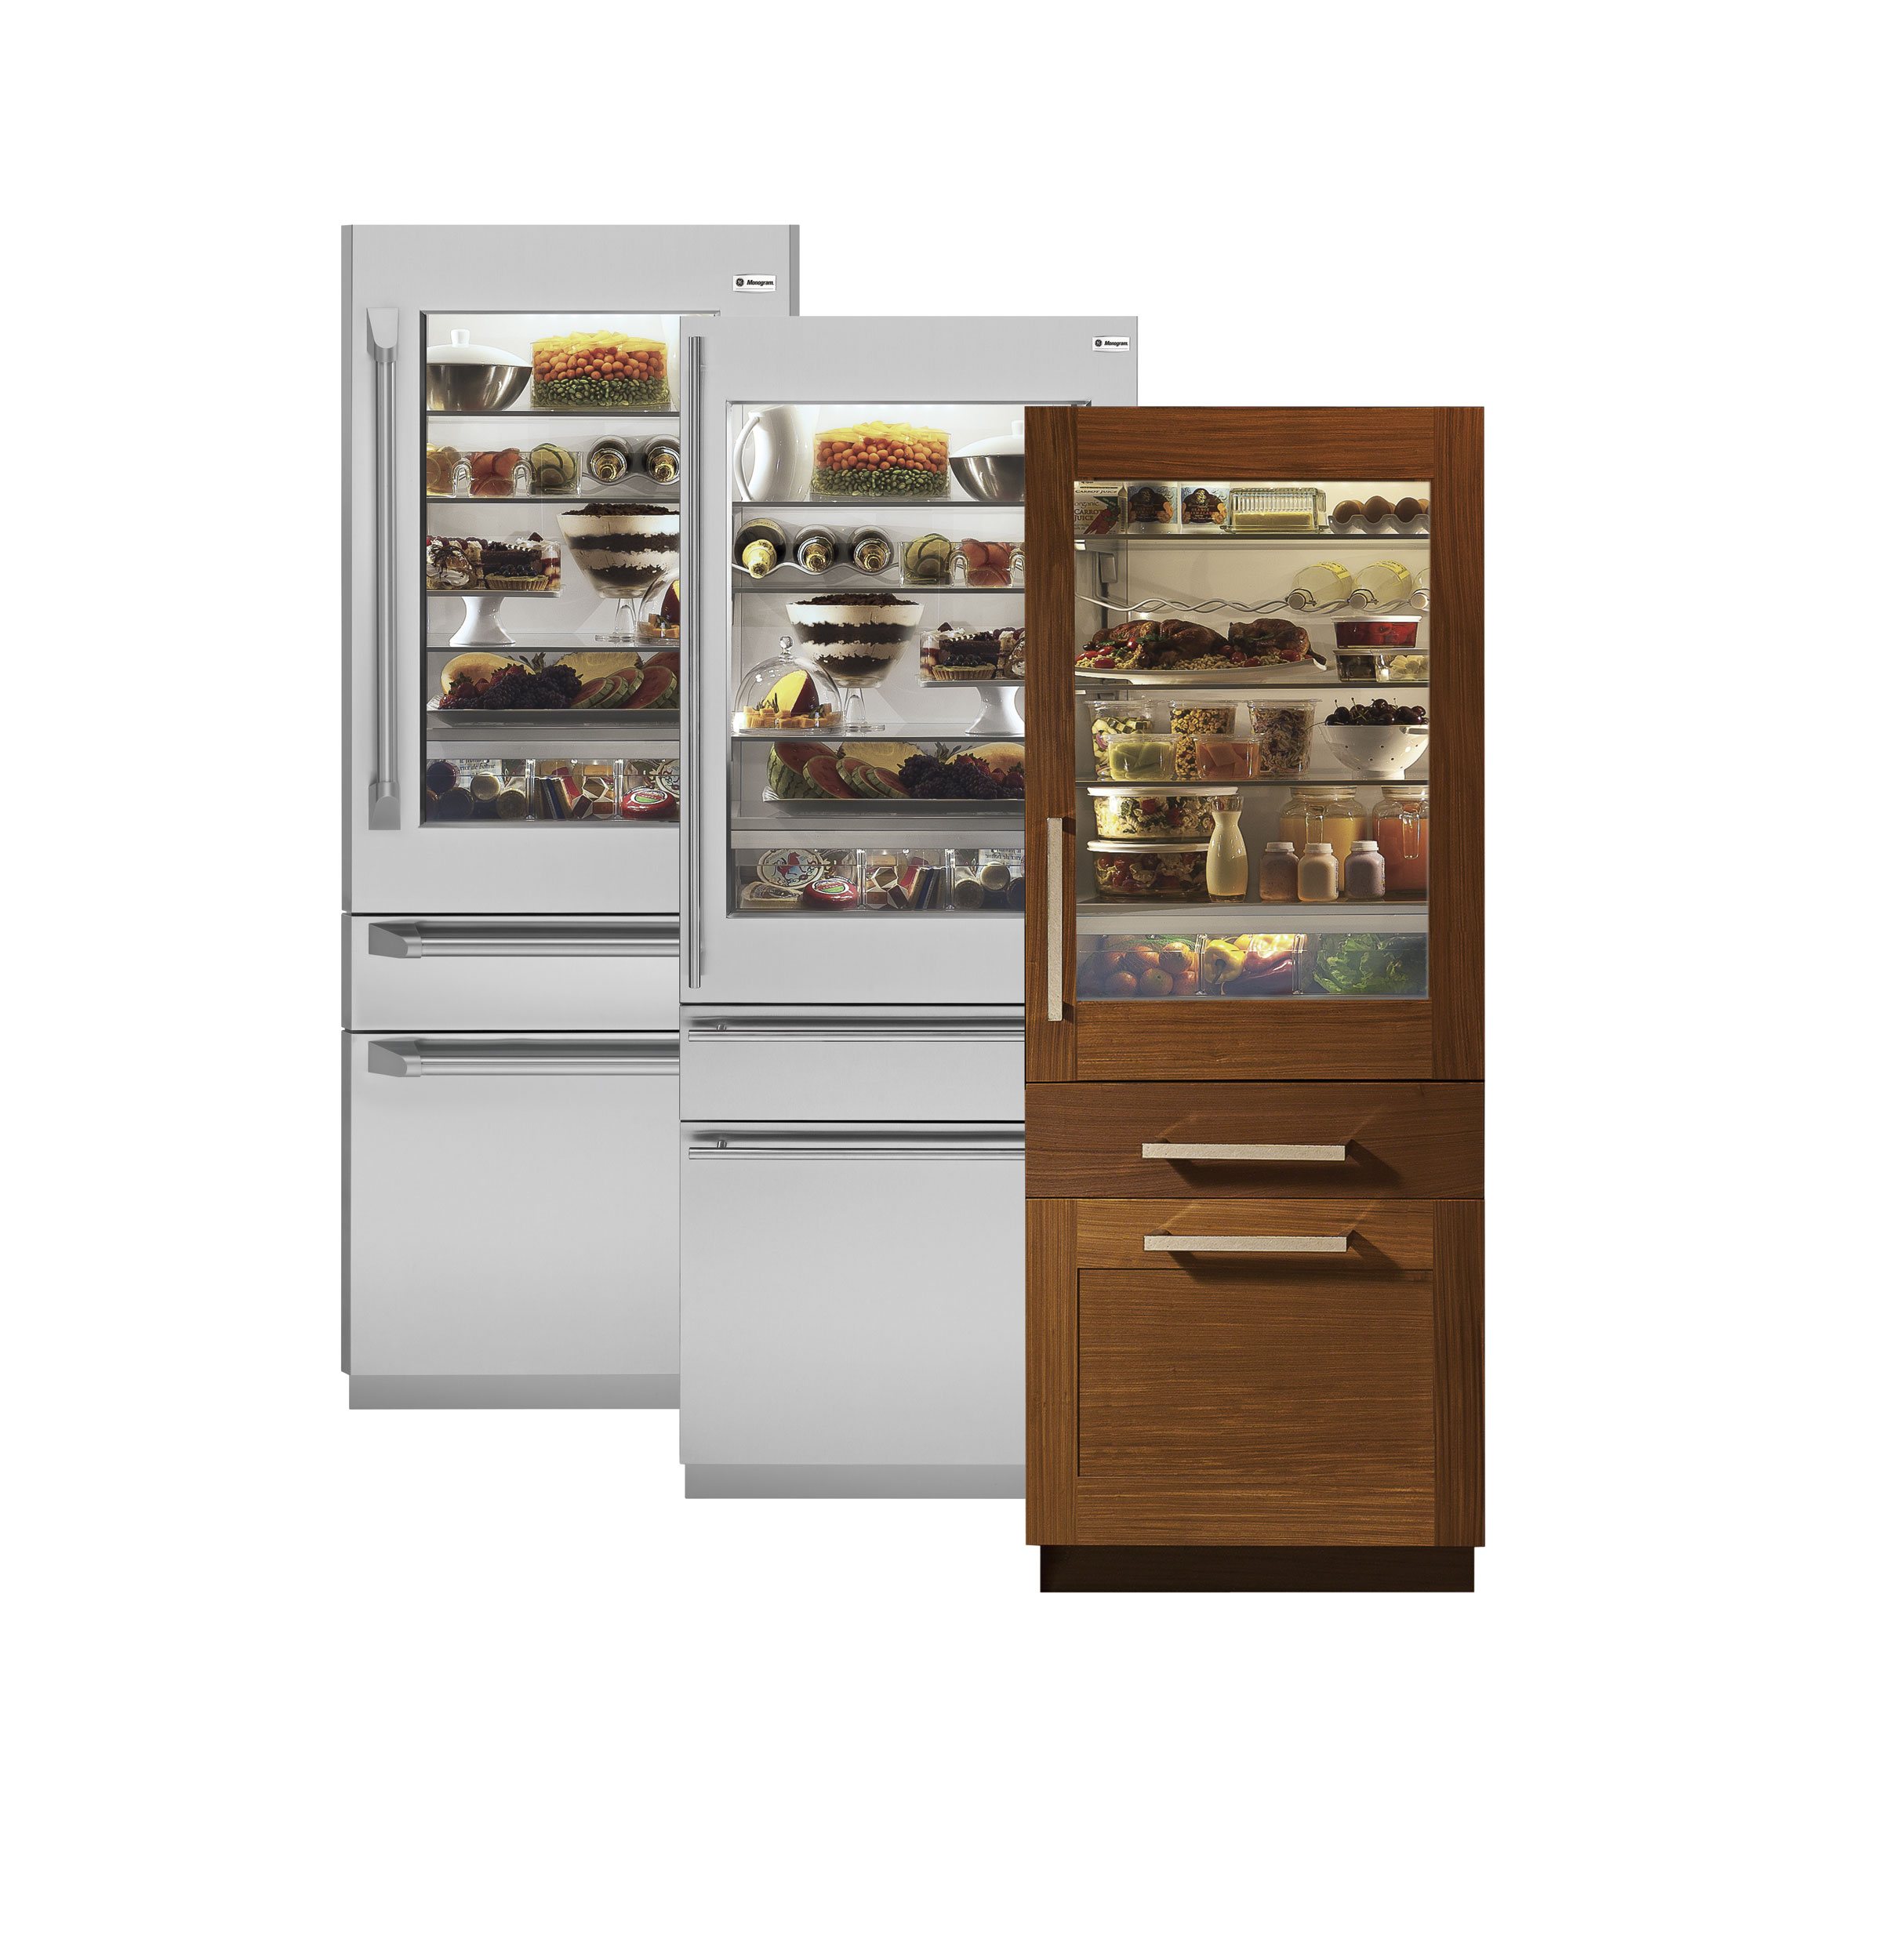 Monogram 30 Integrated Glass Door Refrigerator With